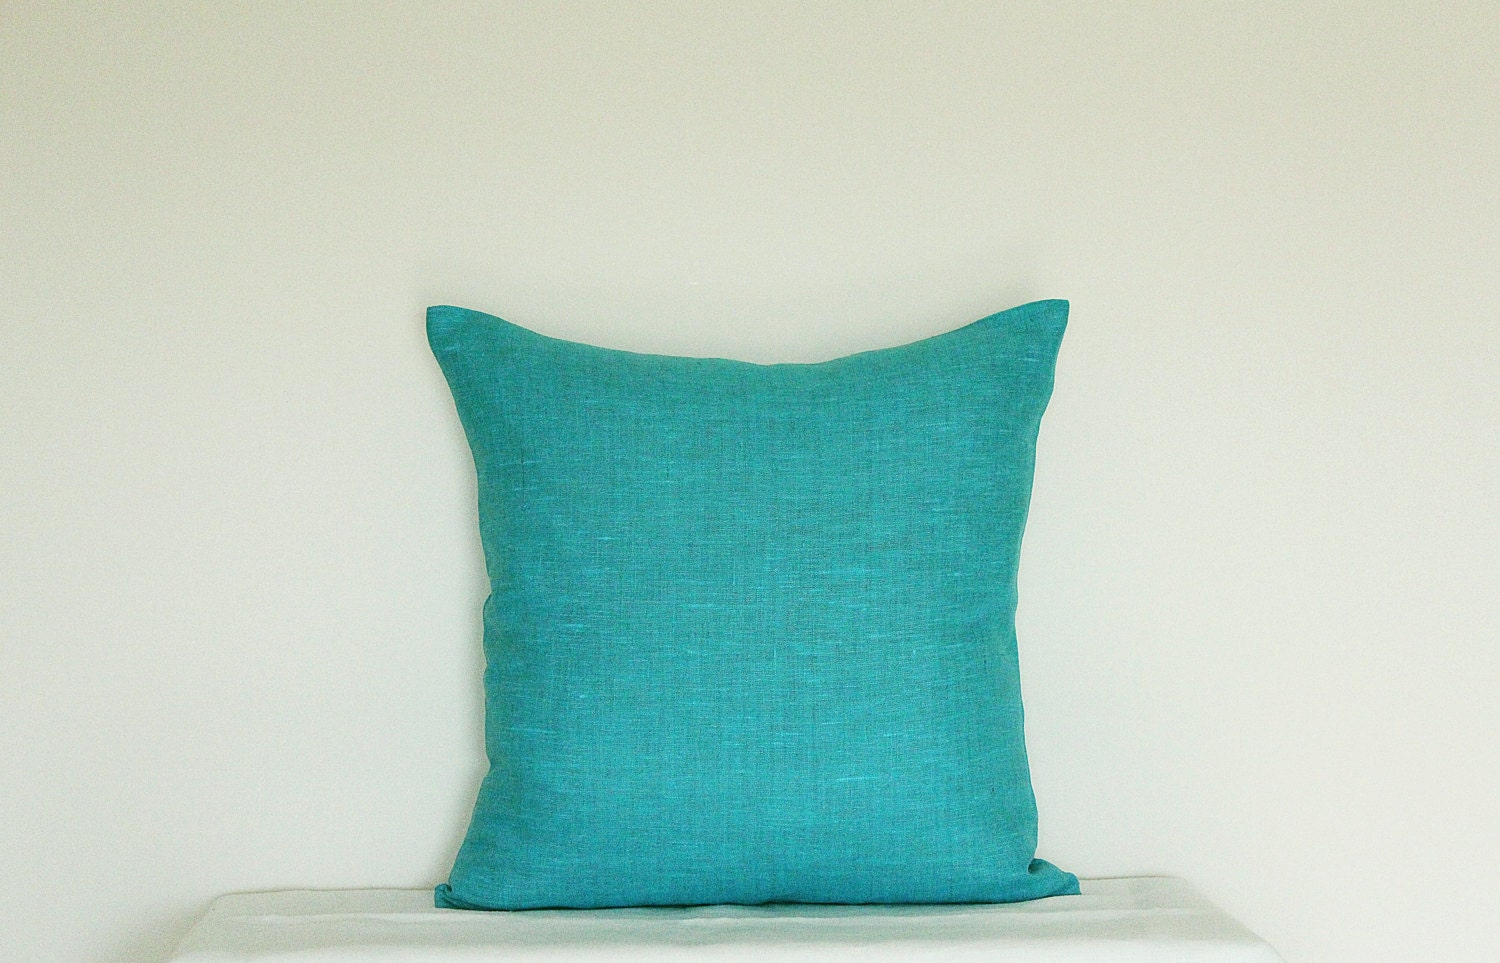 Decorative Pillows With Teal : Decorative Bright Teal Blue Pillow Turquoise Pillow Cover